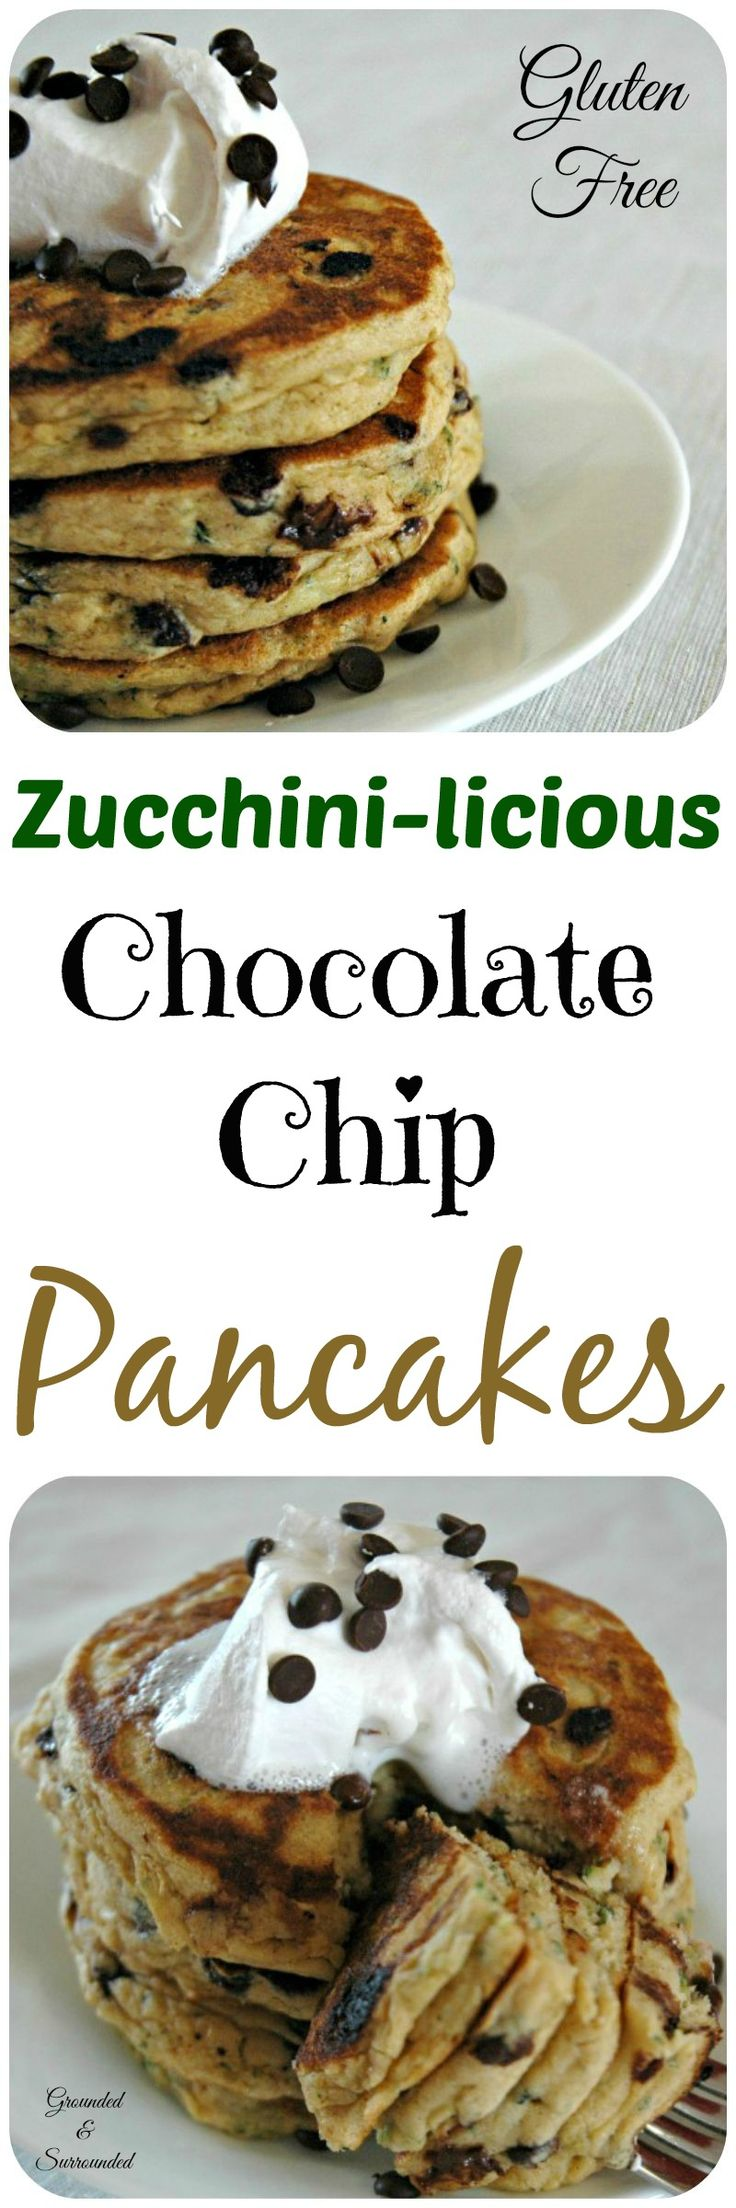 Zucchini has never tasted better! Pancakes will never be the same after you have made these fluffy beauties. These easy pancakes from scratch include a vegetable and chocolate chips and will have your kids begging for more! They are the perfect gluten free breakfast, snack, or dessert. A healthy splurge never hurt anyone!